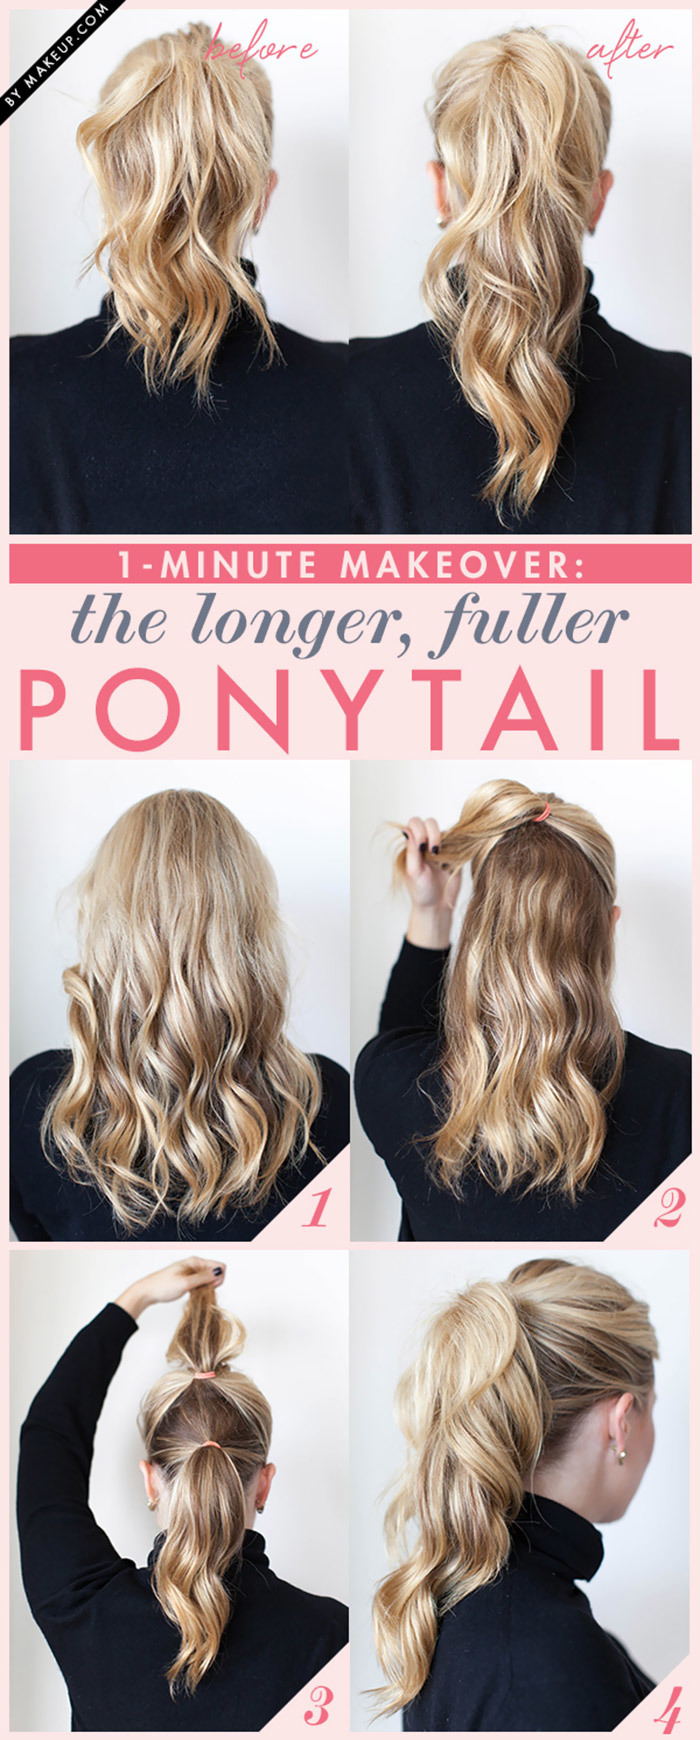 double-ponytail trick